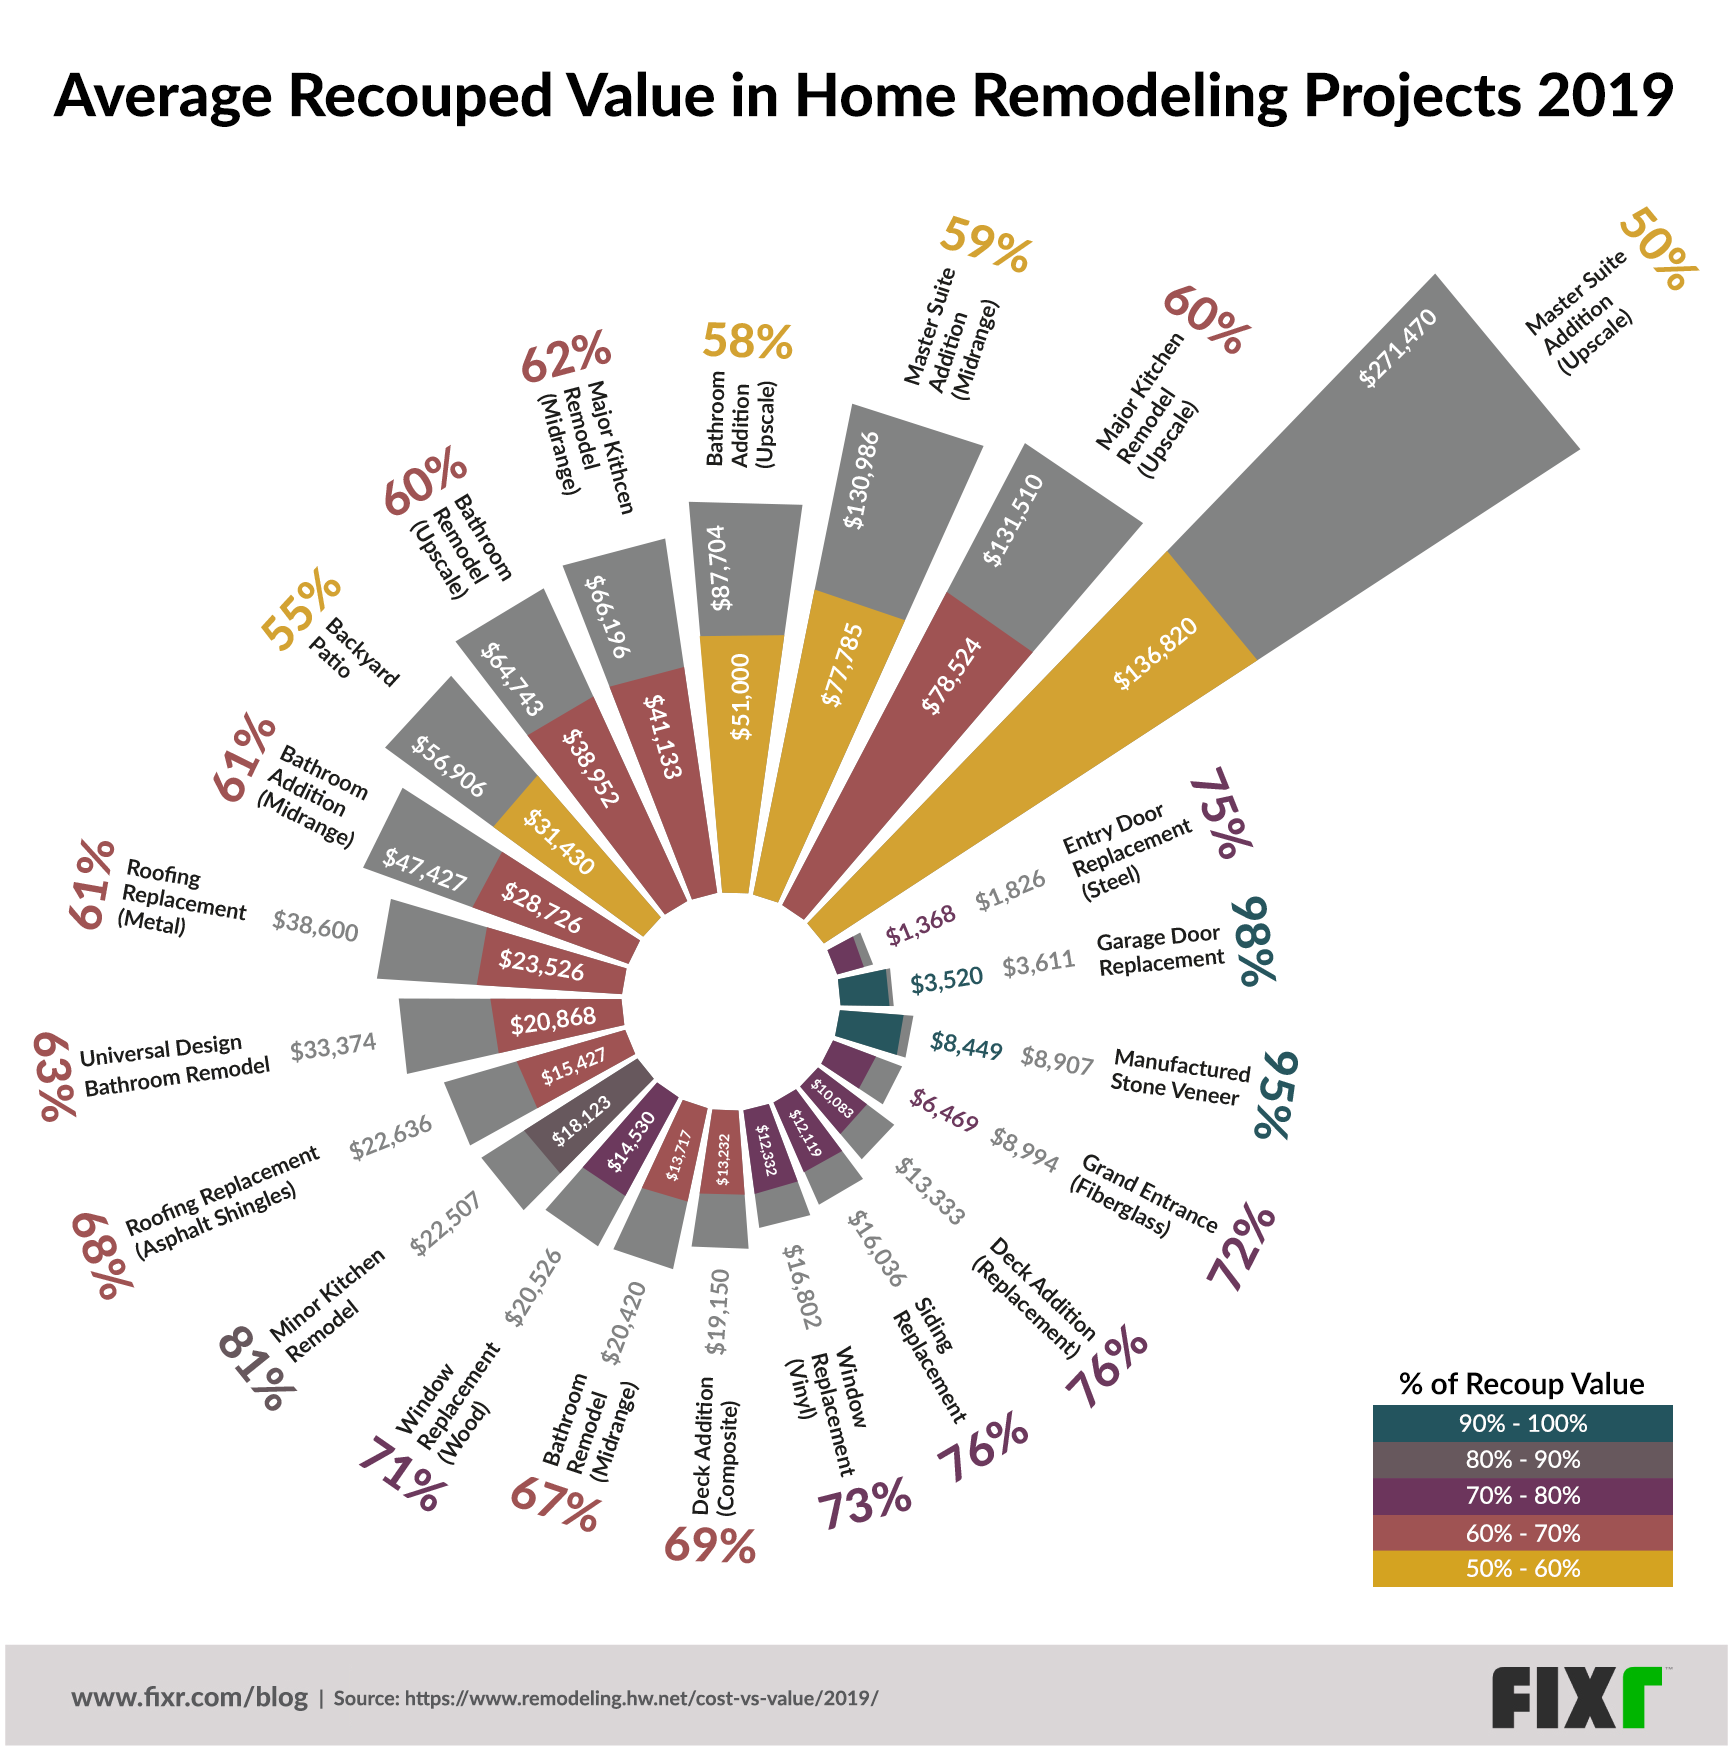 Fixr Chart Reimagines 2019 Cost Vs. Value Report